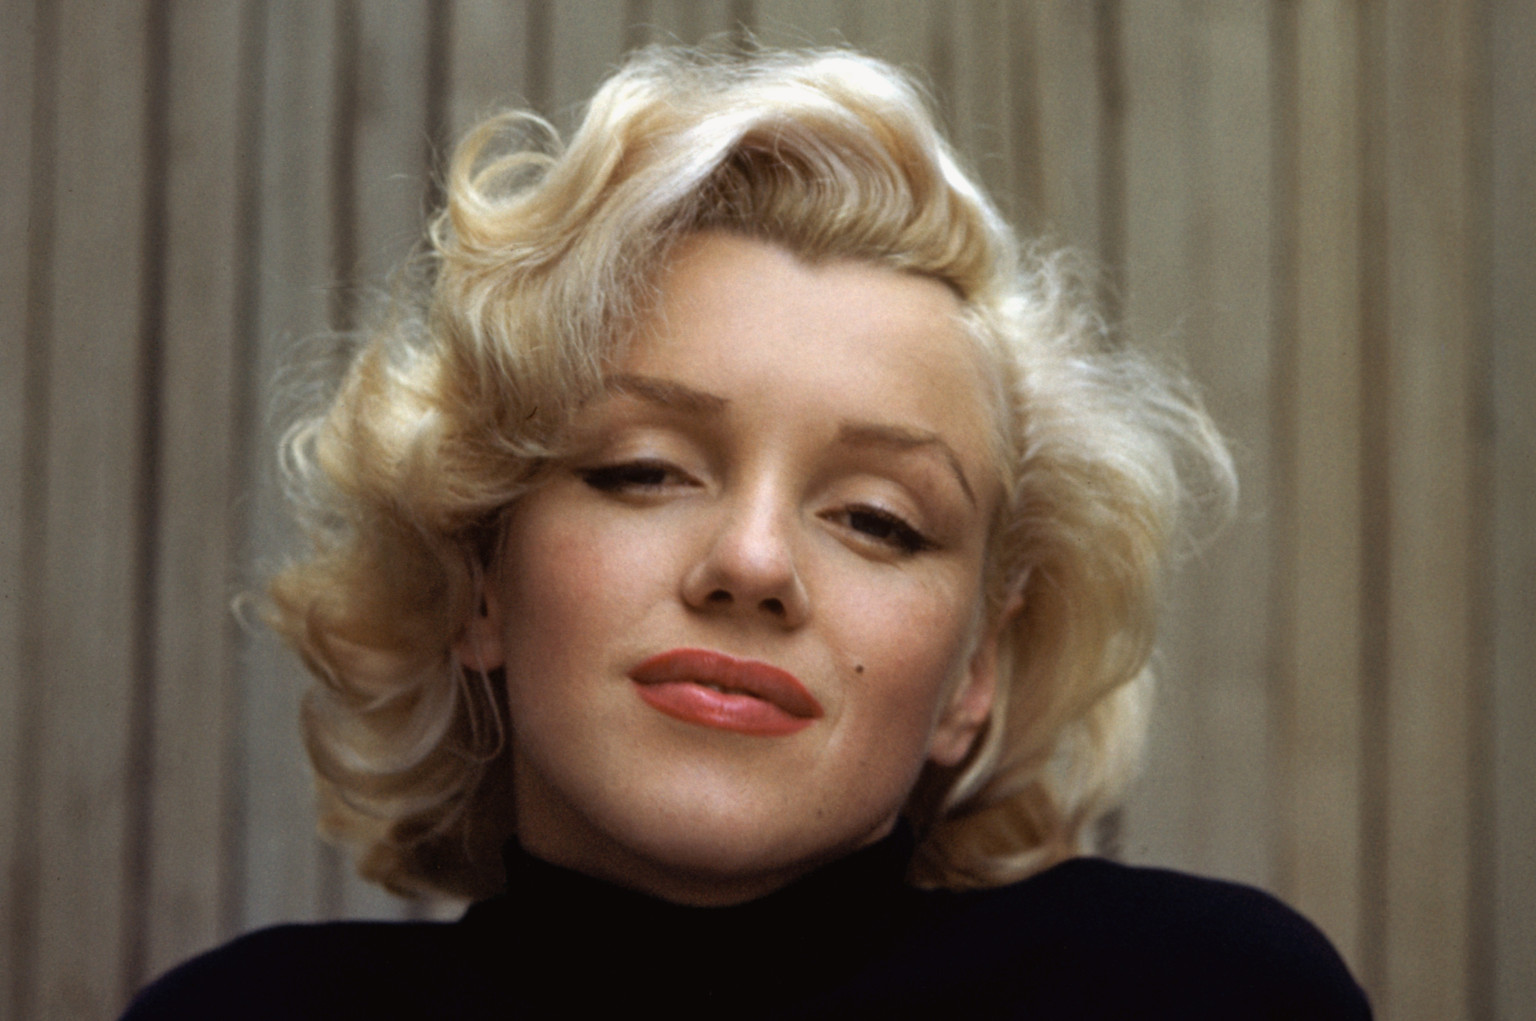 Vintage hairstyling tips that will make you look like a modern-day Marilyn Monroe